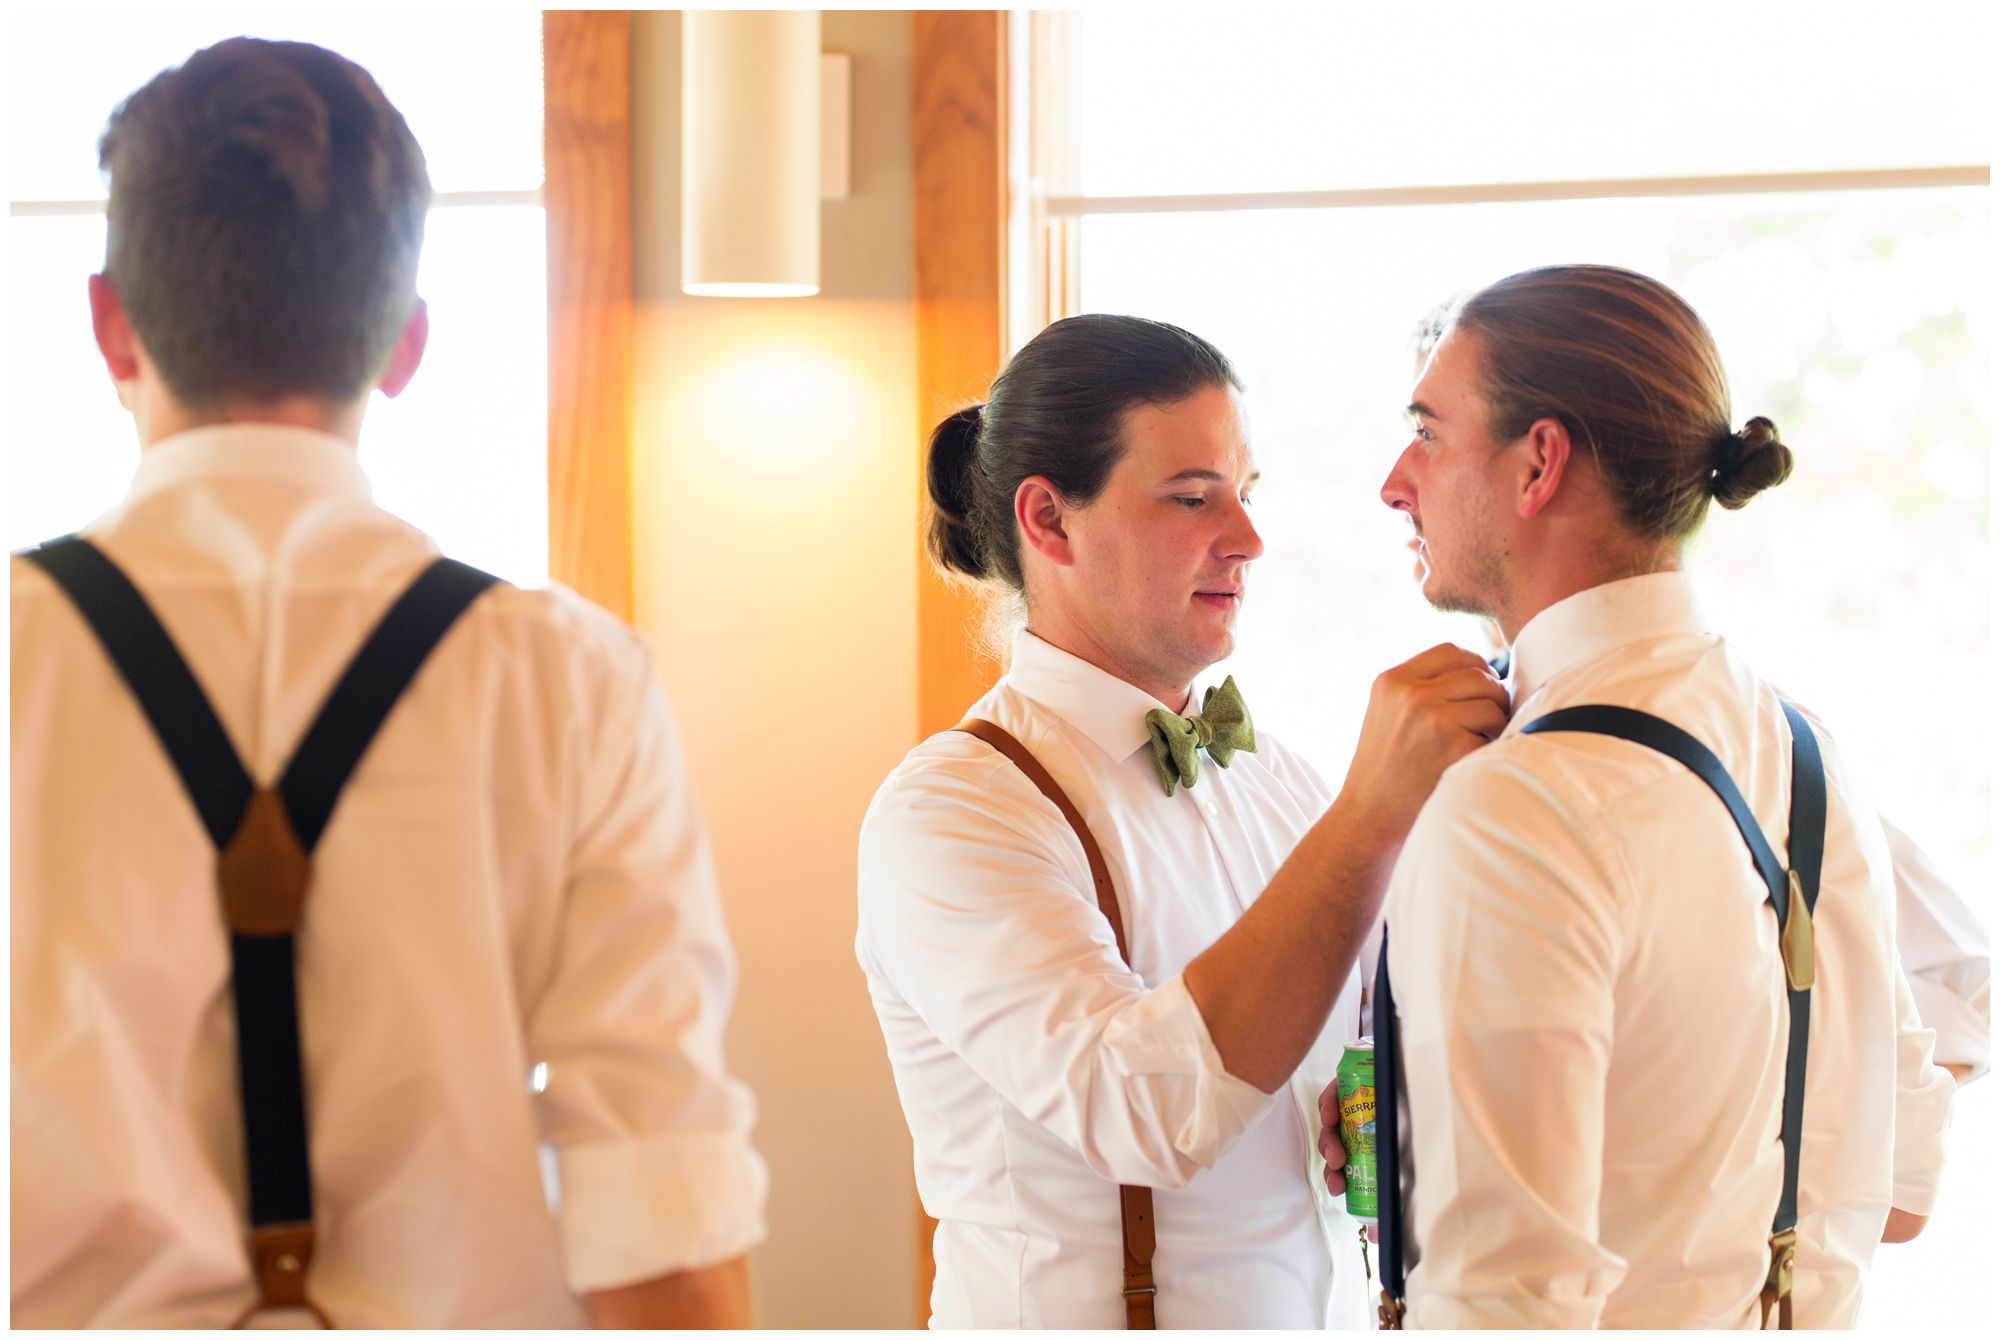 groom and groomsmen get ready for wedding ceremony at Forest Park Inn